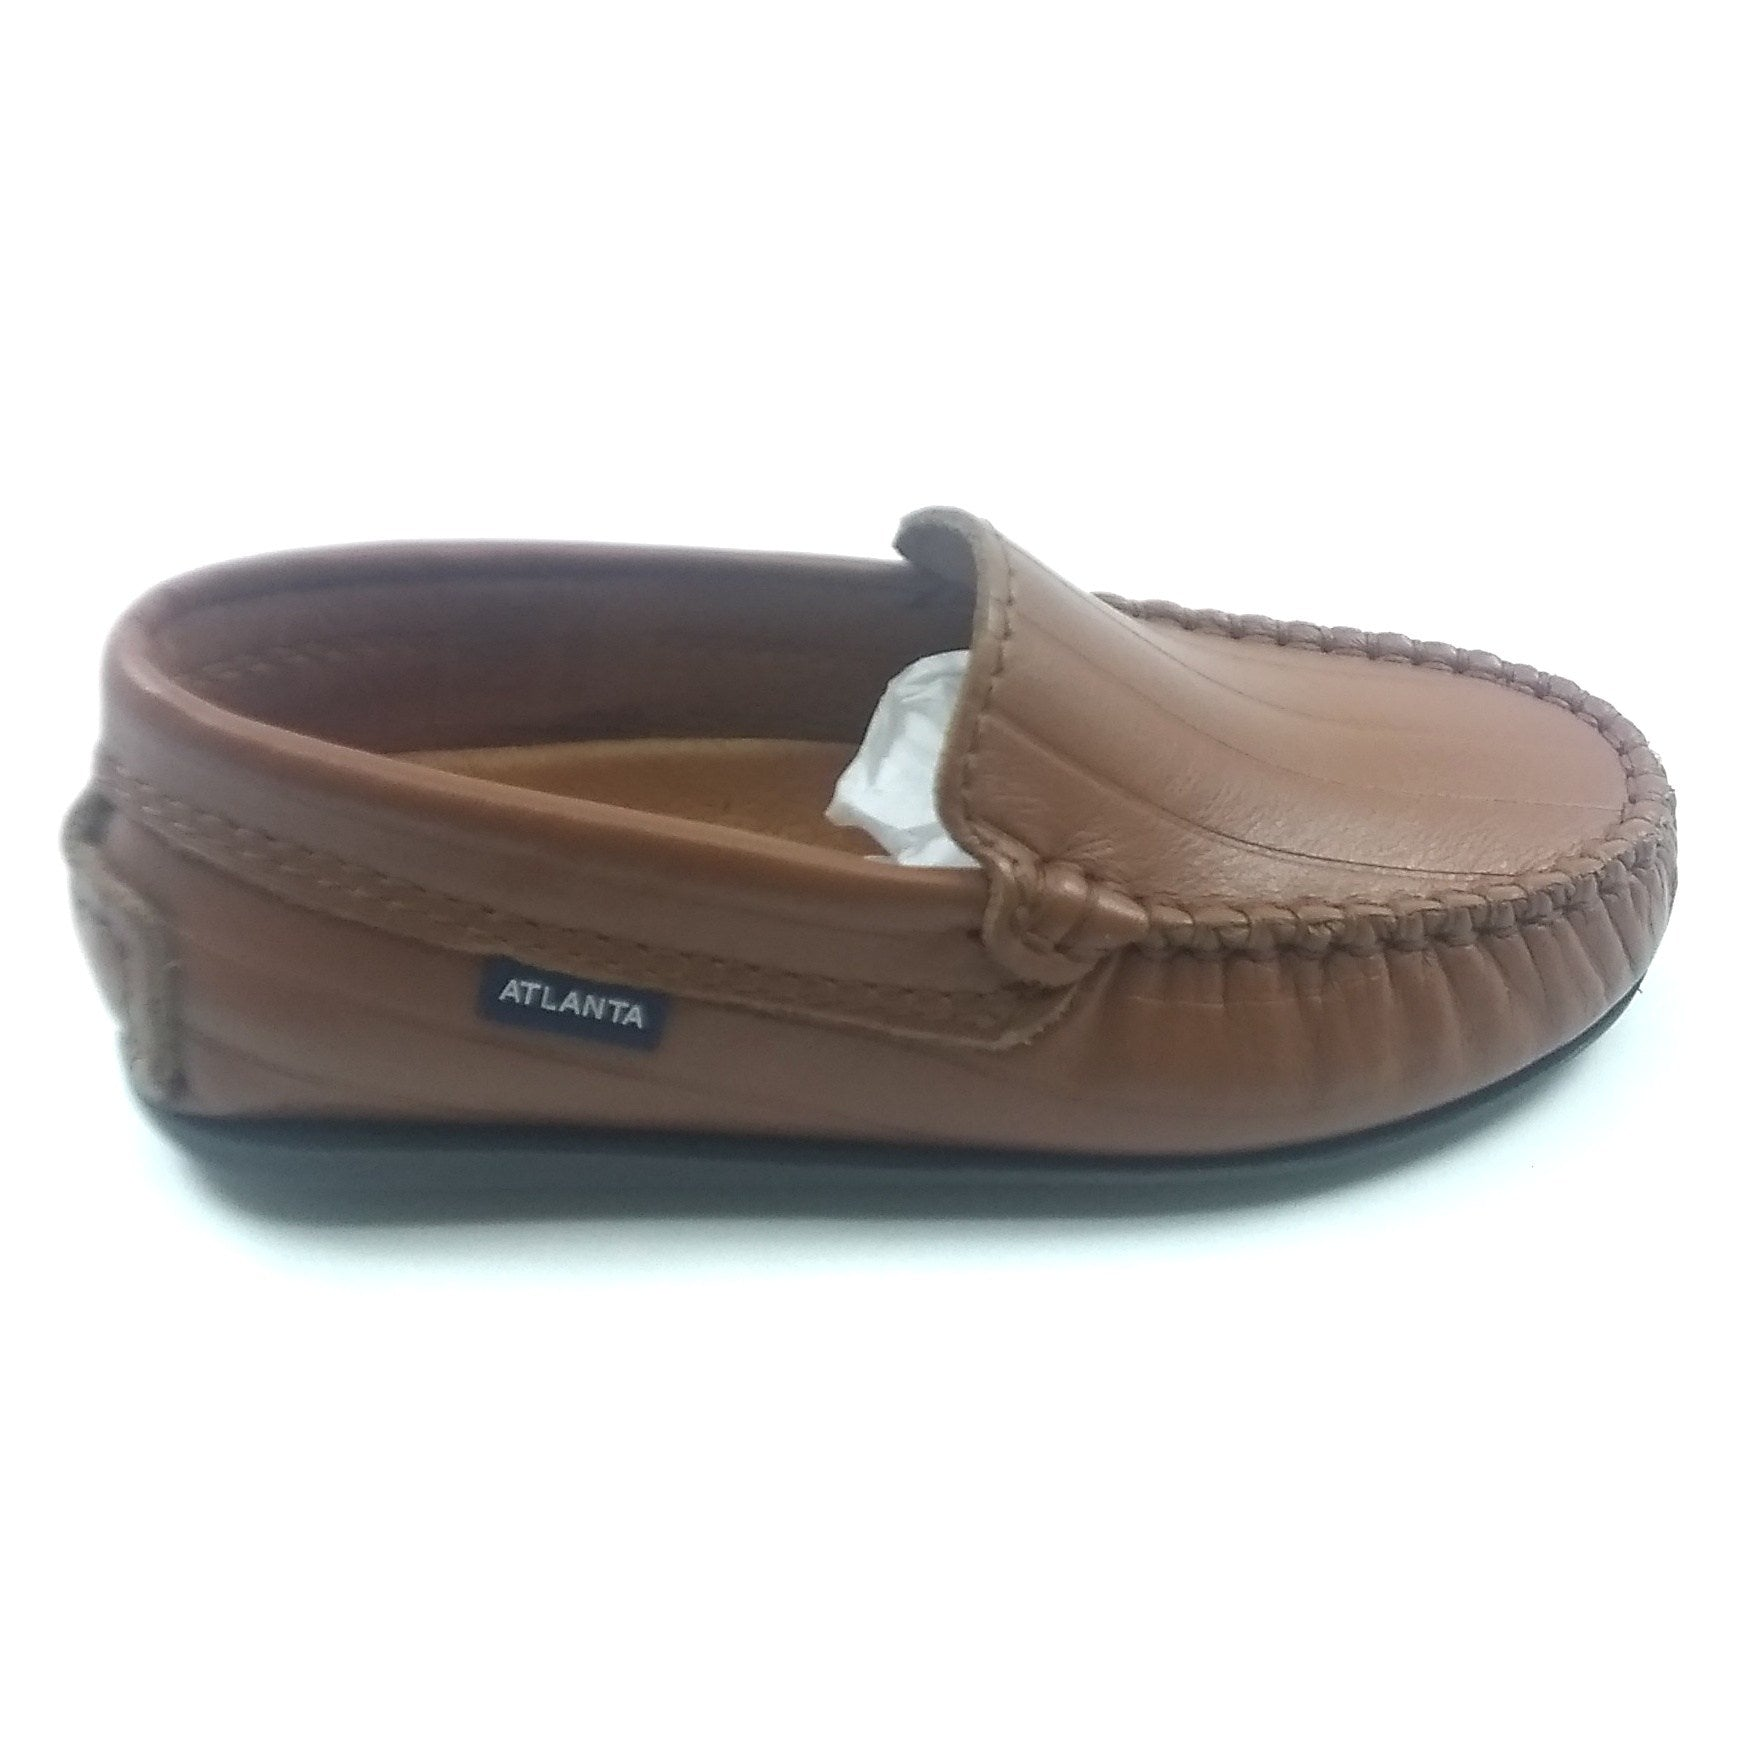 Atlanta Mocassin Brown Loafer